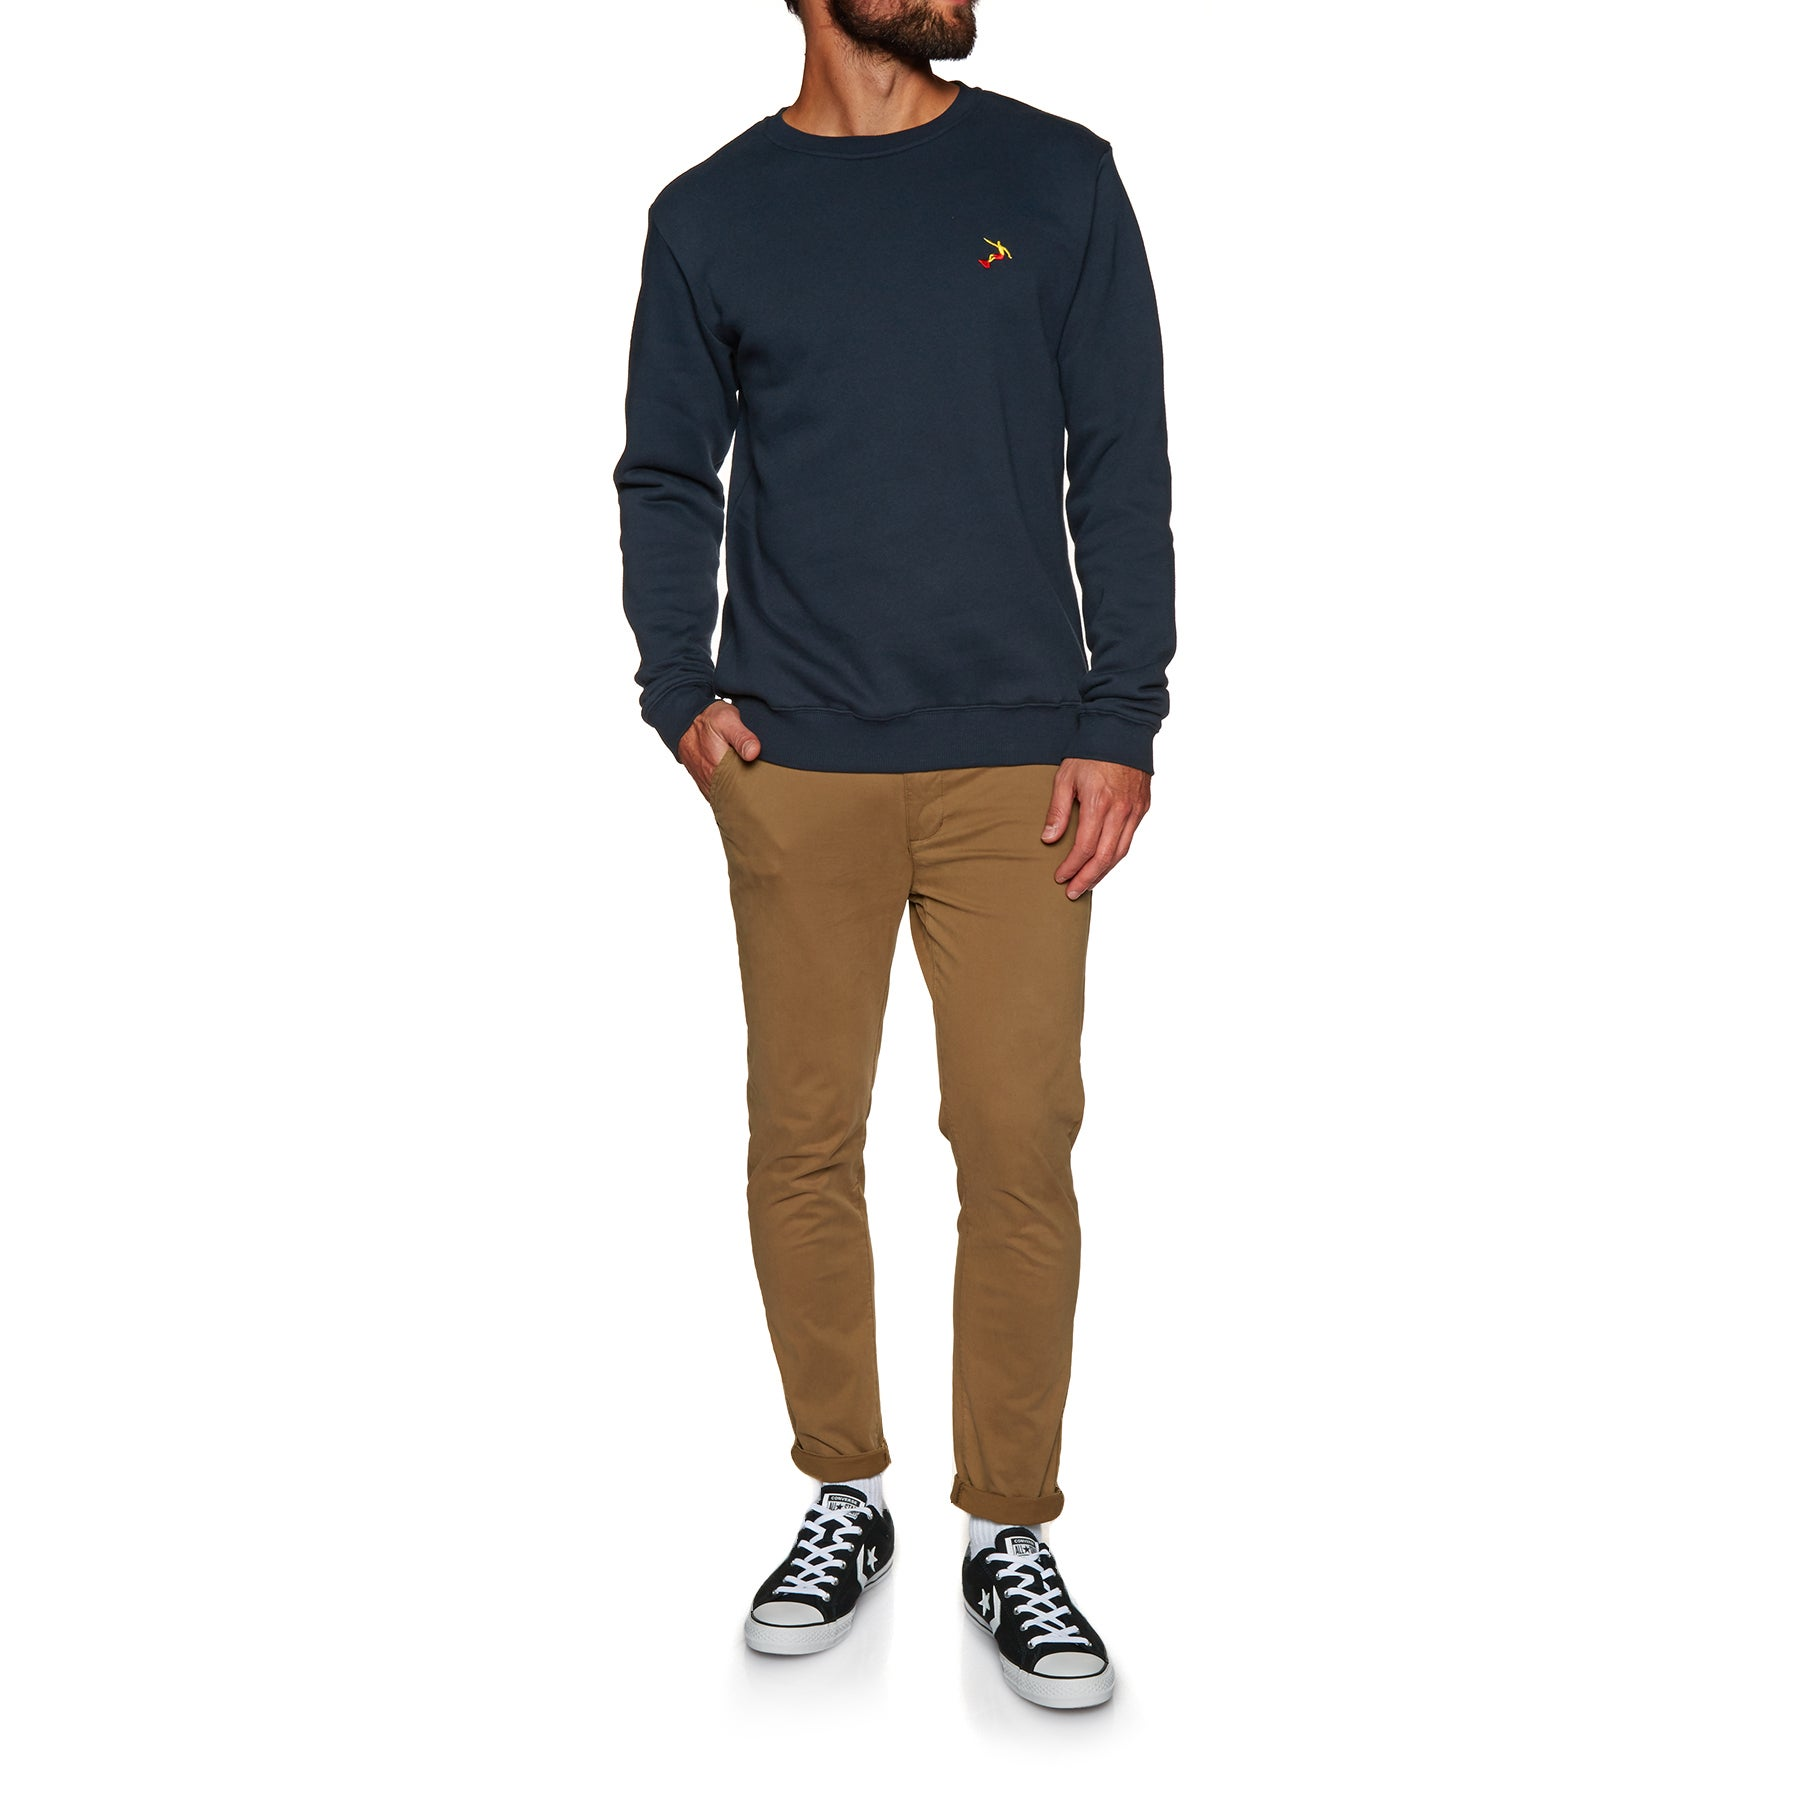 SWELL Layback Crew Sweater - Navy